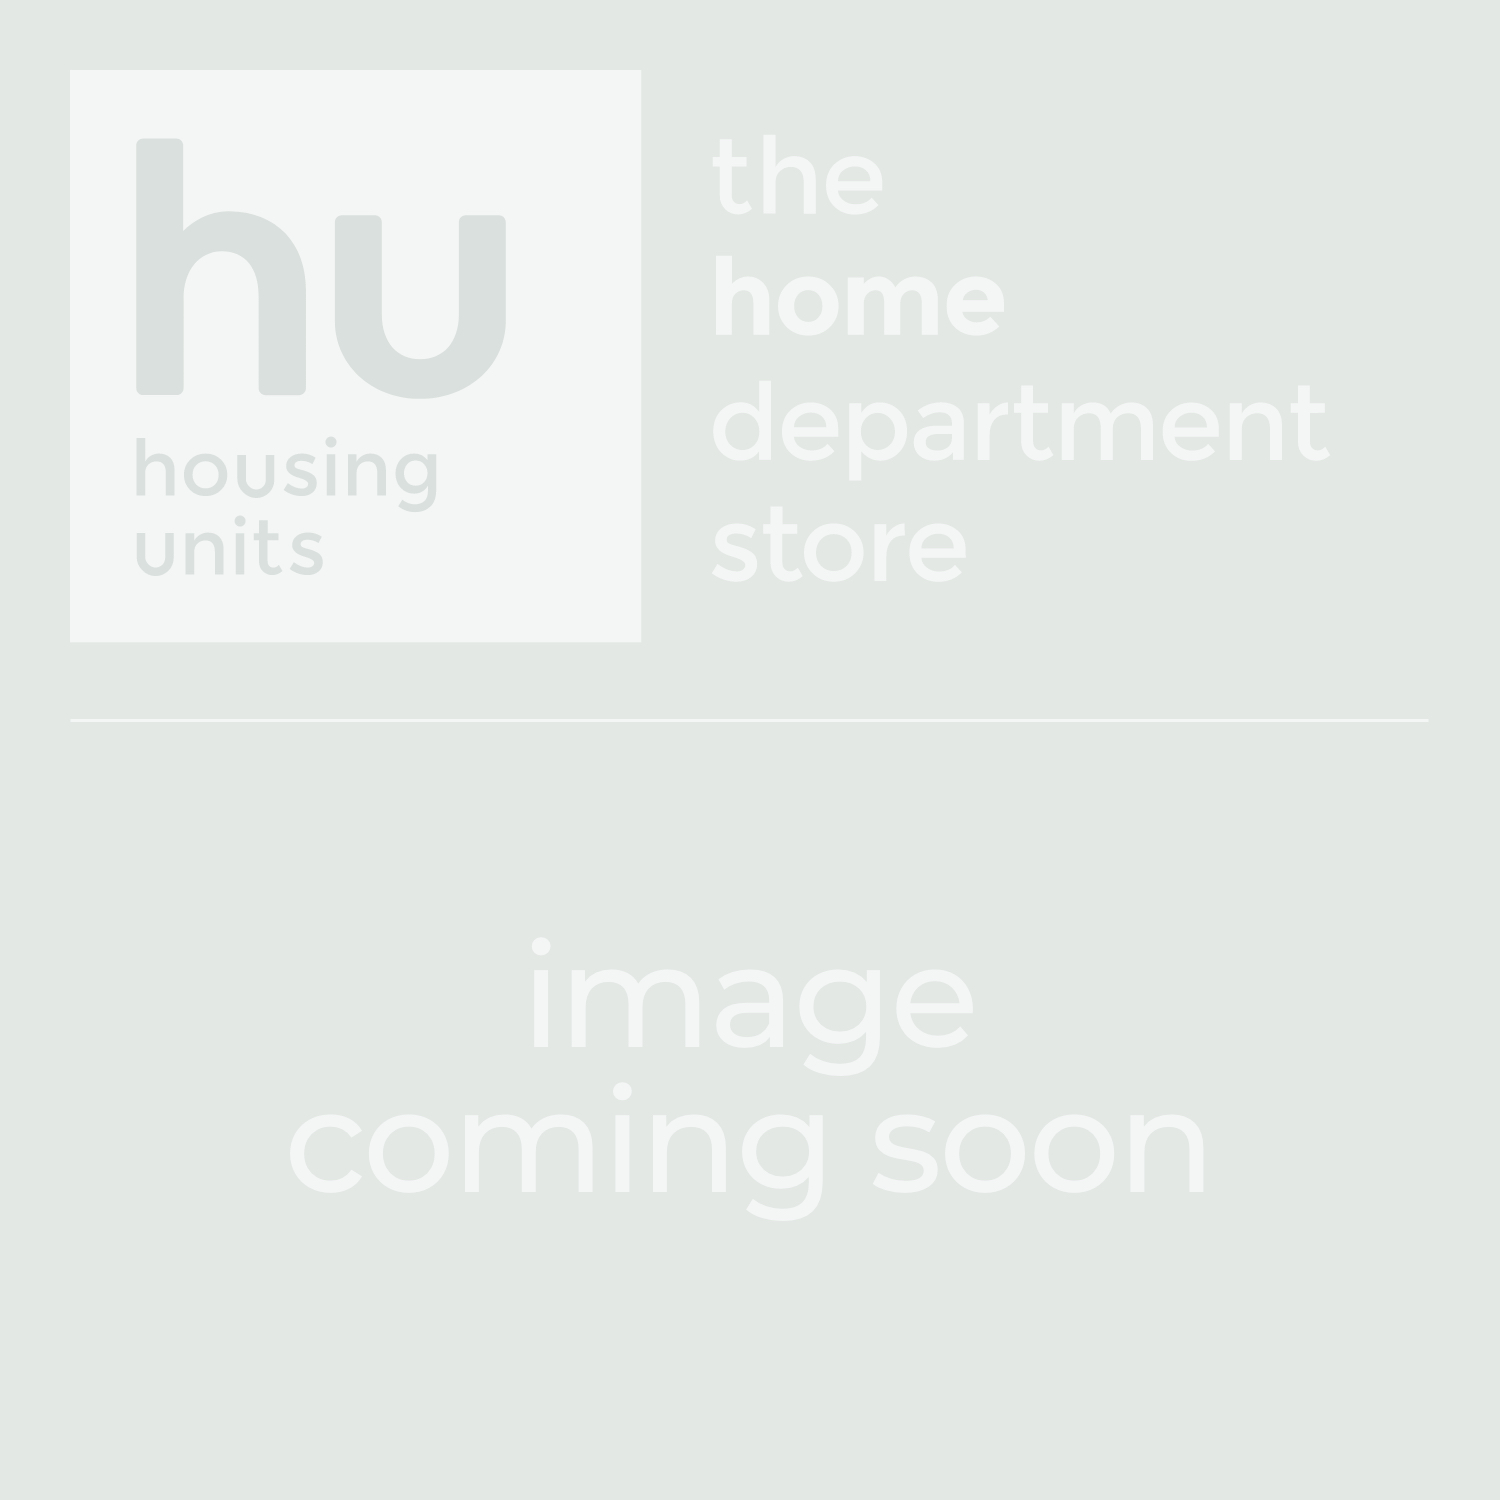 Celestial Round 122 x 122cm Ivory Teal Blue Rug | Housing Units